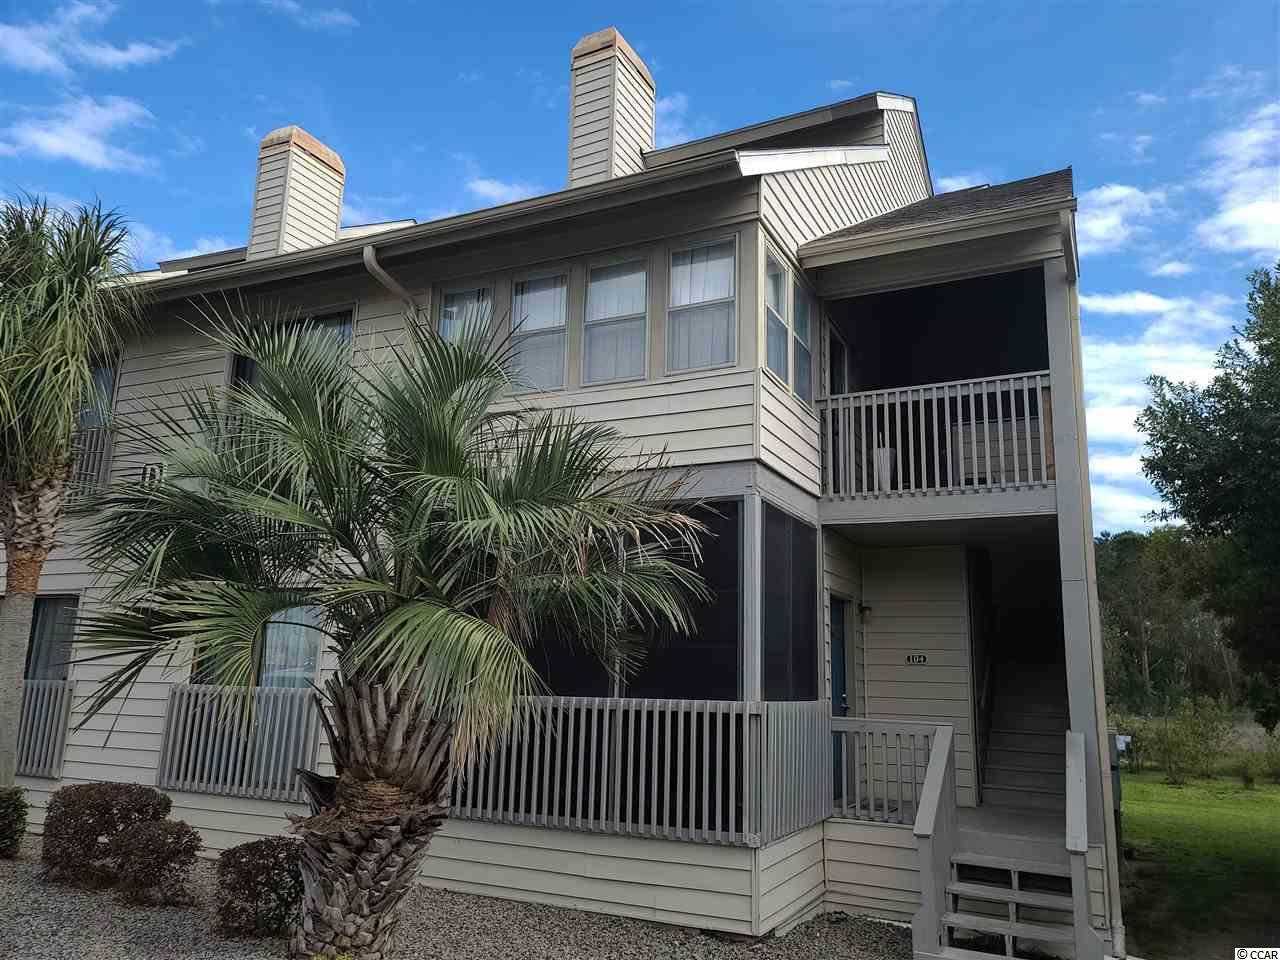 Location, Location, Location.  Be the proud owner of this 4 bedroom condo in the area of Surfside Beach, the family beach.  This is a short bike ride or walk down to the beach and the pier area of Surfside.  This unique unit has 4 bedrooms and a wood burning fireplace. There have been so many upgrades done to this unit, you will just need to see it.   The front porch has been closed to add an additional room to the unit which can be used as an office or 4 seasons room.  The living room is open with a nice wood burning fireplace to enjoy on those chilly winter nights.  The kitchen has been remodeled with a breakfast bar and a beautiful copper ceiling fa-sad. The two back porches have been updated with new roofs, screening and ez porch type windows for more outdoor use of the area in your home.  The porches have a wonderful view of the pond, so you can sit on the porch in the mornings with your coffee and enjoy the view and the sounds of the wildlife.  In the evenings, you could use the area to relax and unwind.  The upstairs has a common living area for the 2 bedrooms up there with one of the rooms having a loft.  Perfect family beach retreat.  The community has its own pool and is walking distance to the grocery store, shopping and restaurants.  Don't let this great place pass you by.  Call today to schedule your showing.